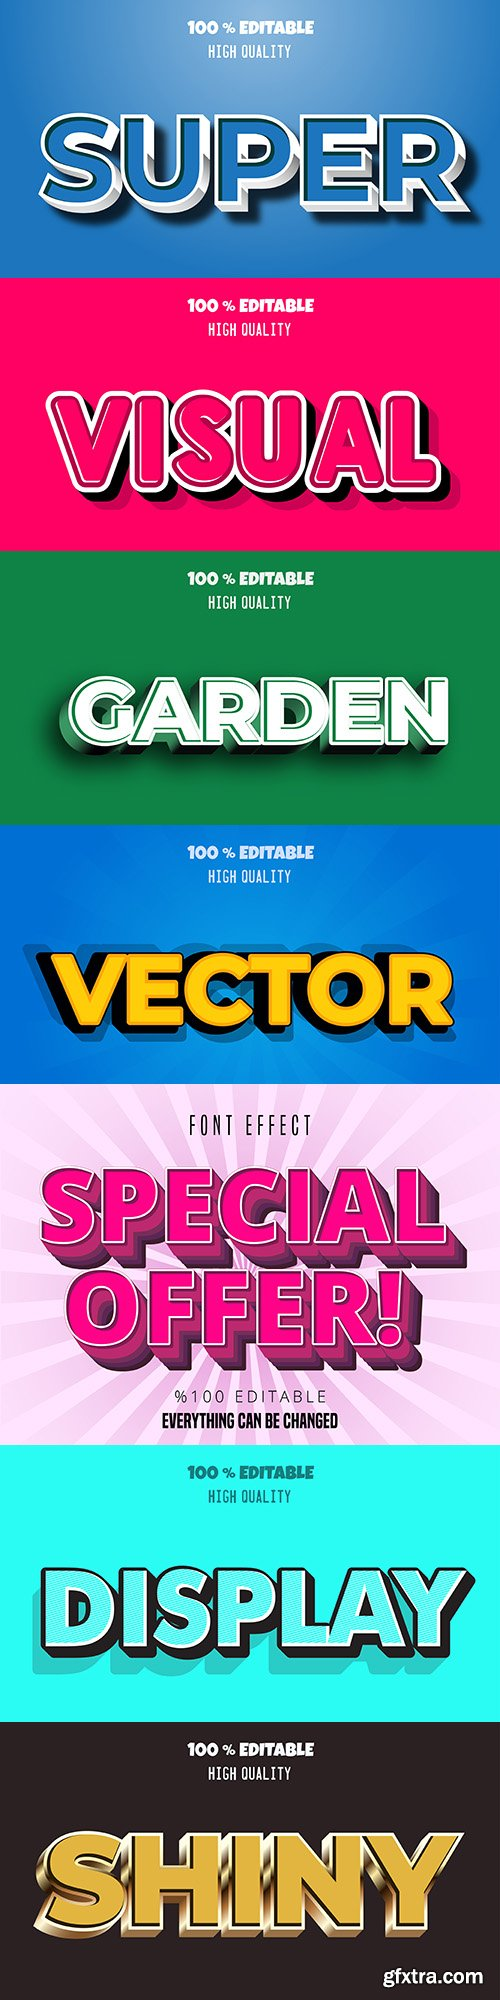 Font effect editable collection illustration 8